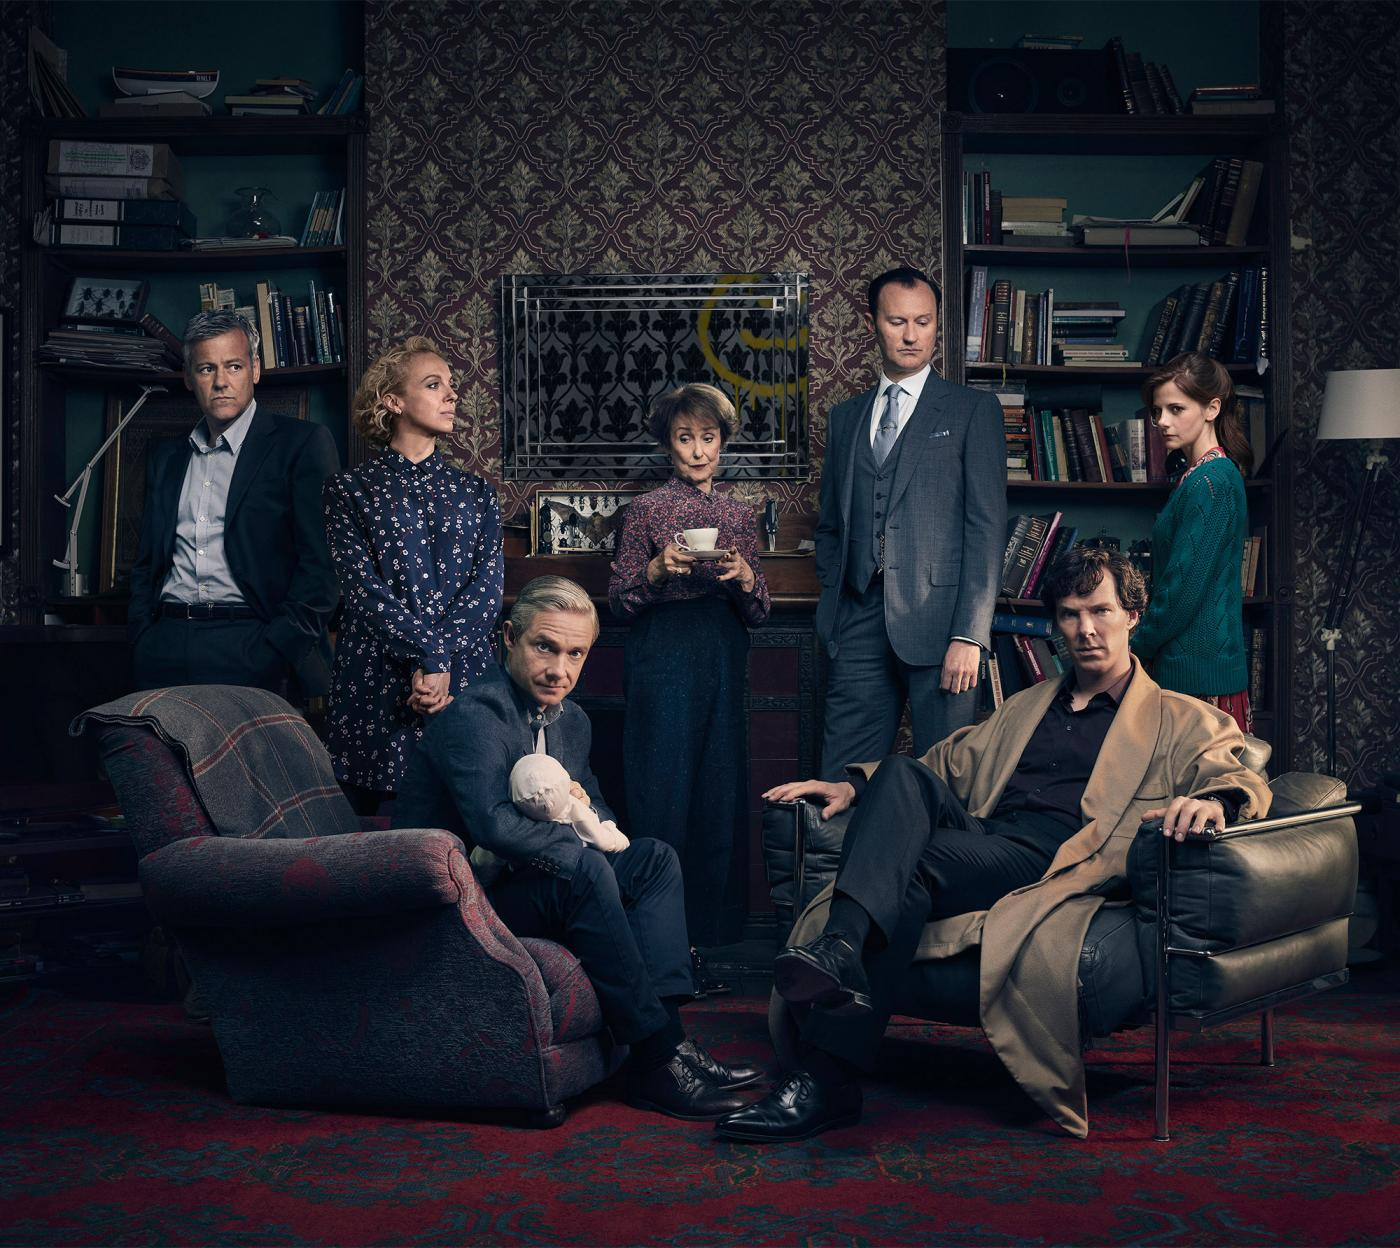 the cast of sherlock is ready for a new season todd antonyhartswood films 2016 for masterpiece - Watch Sherlock Christmas Special